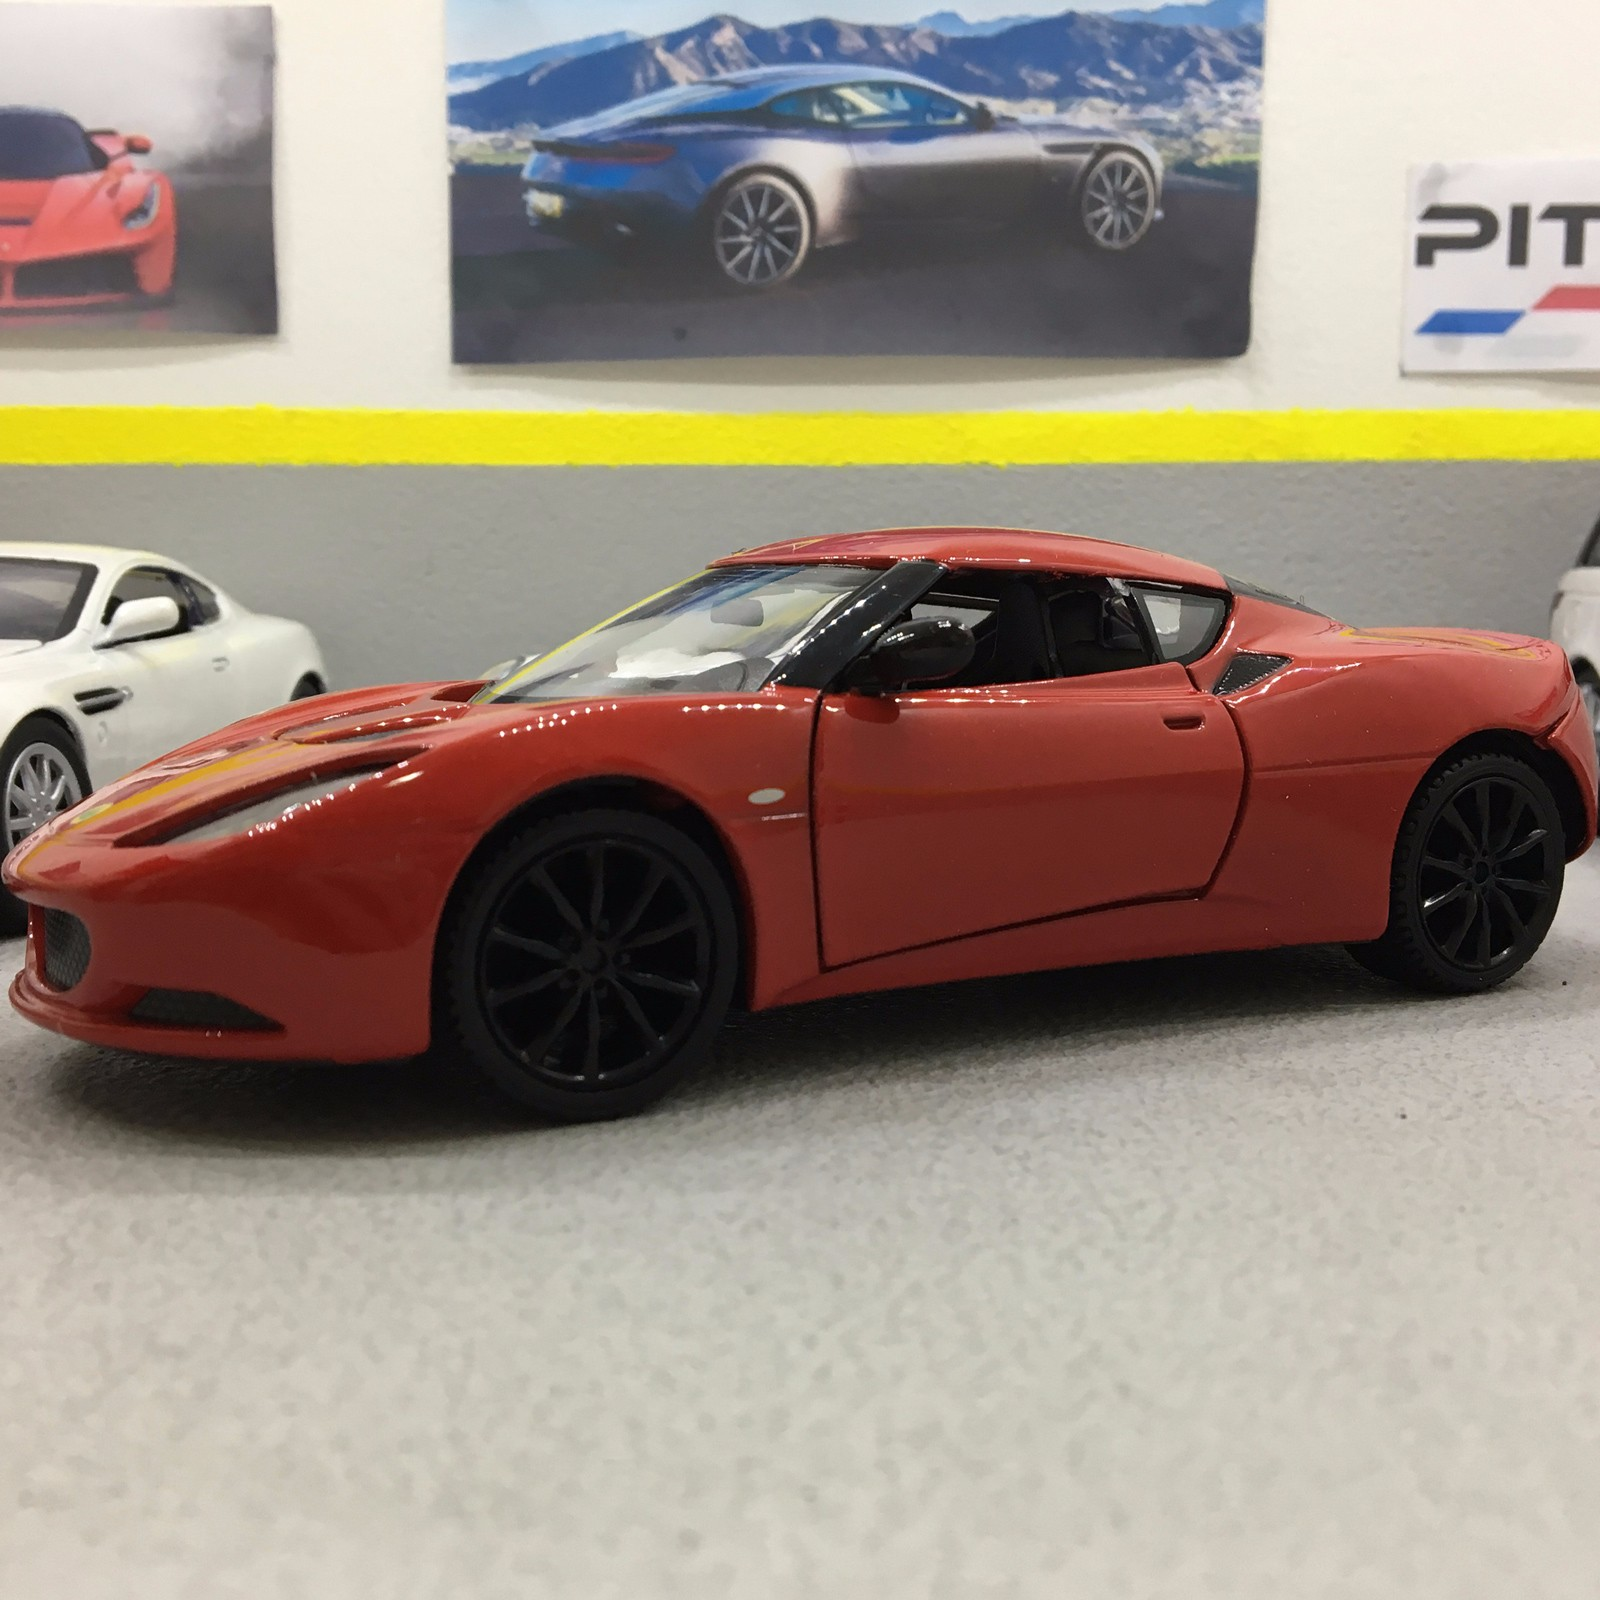 252c22b6f67f Lotus Evora S Supercharged V6 Pitwalk Special Offer - Exclusive To eBay  Customers